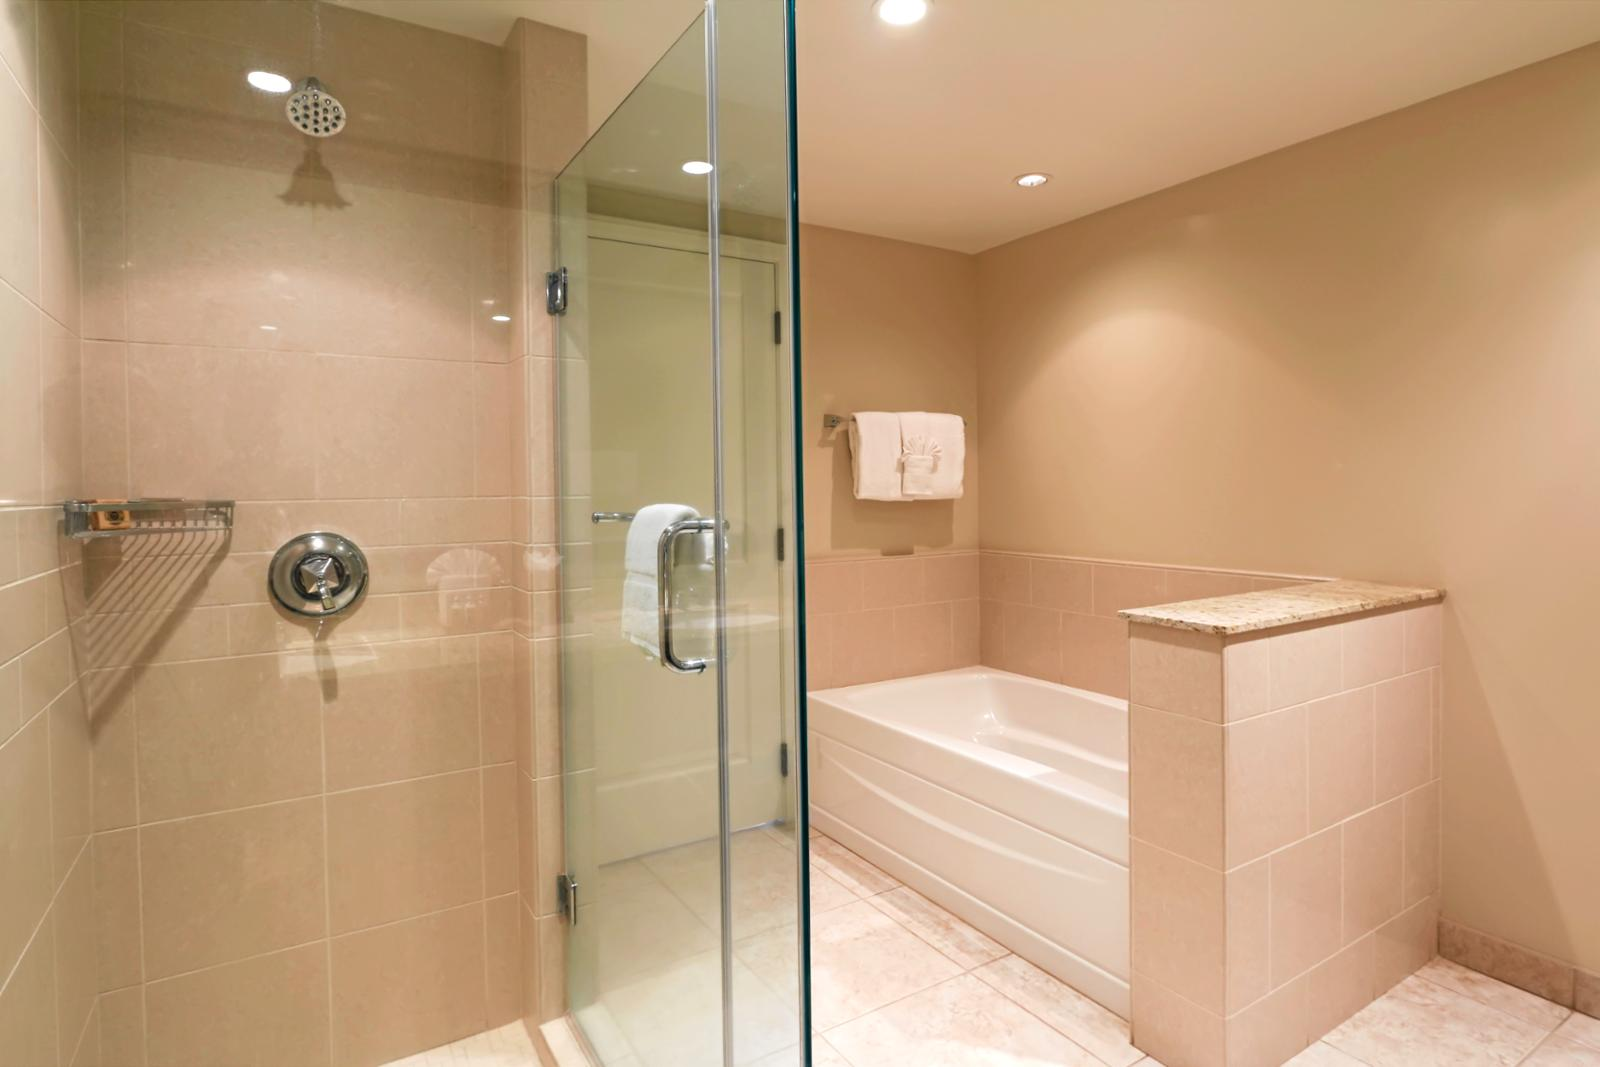 Separate shower and bathtub.